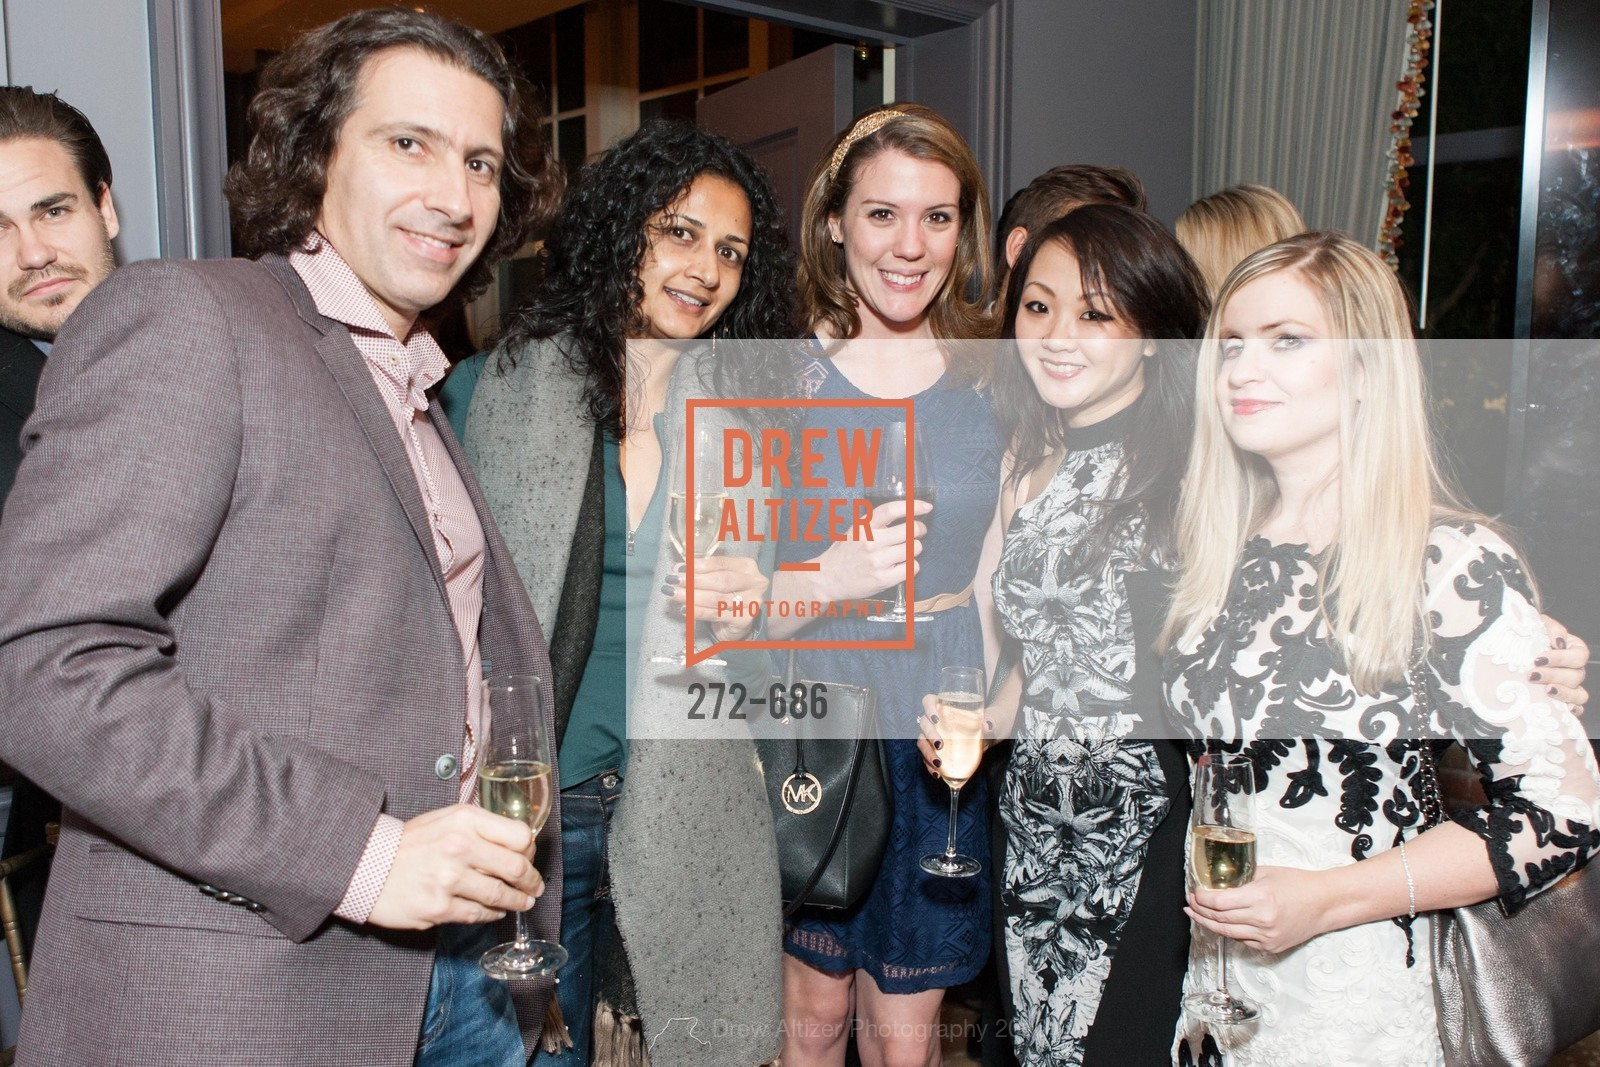 Jacamo Lamey, Samrah Khan, Kari Lincks, Tina Hui, Julie Hall, Photo #272-686